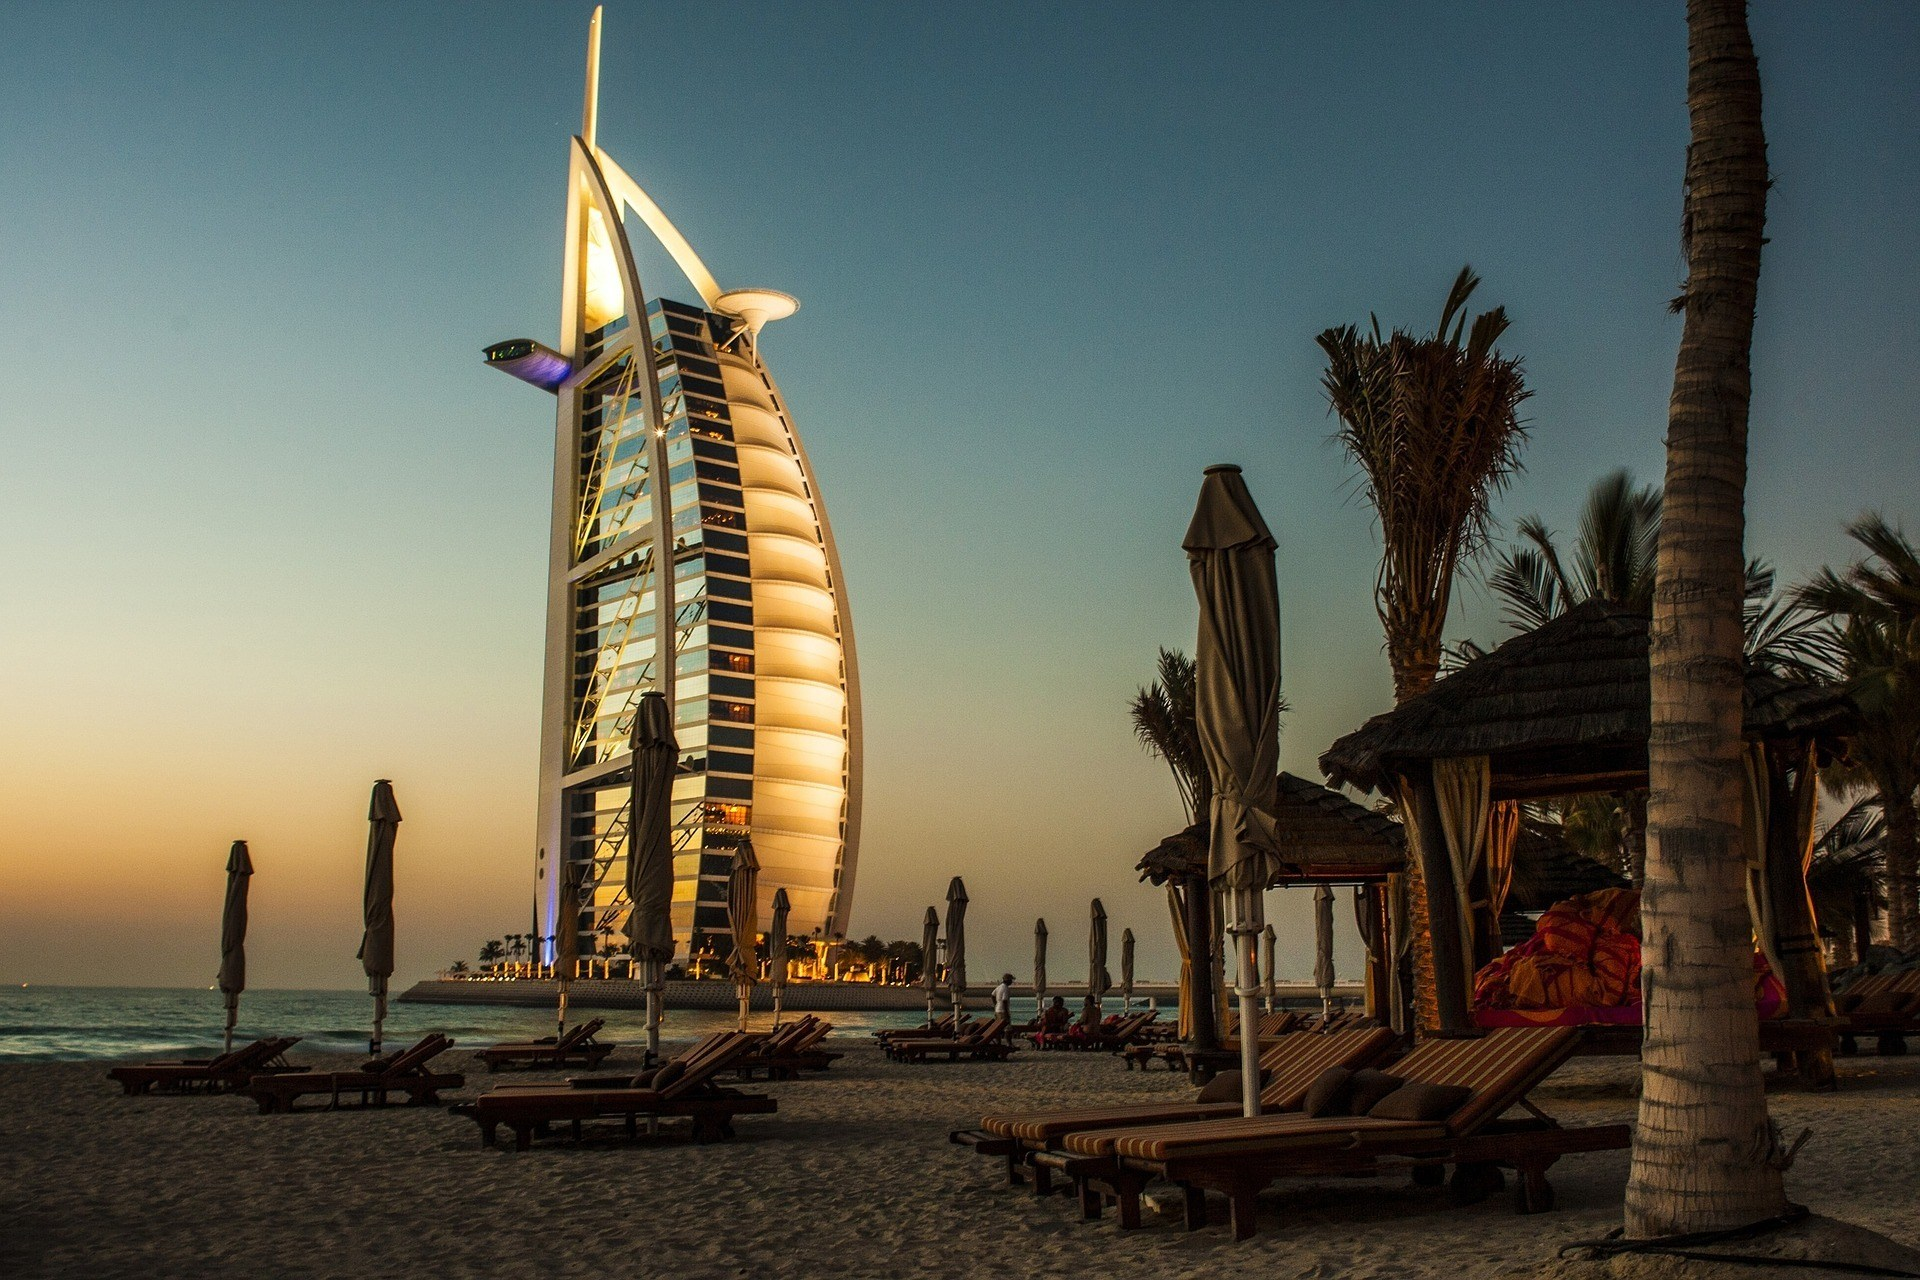 A night out on Dubai's beach in safety